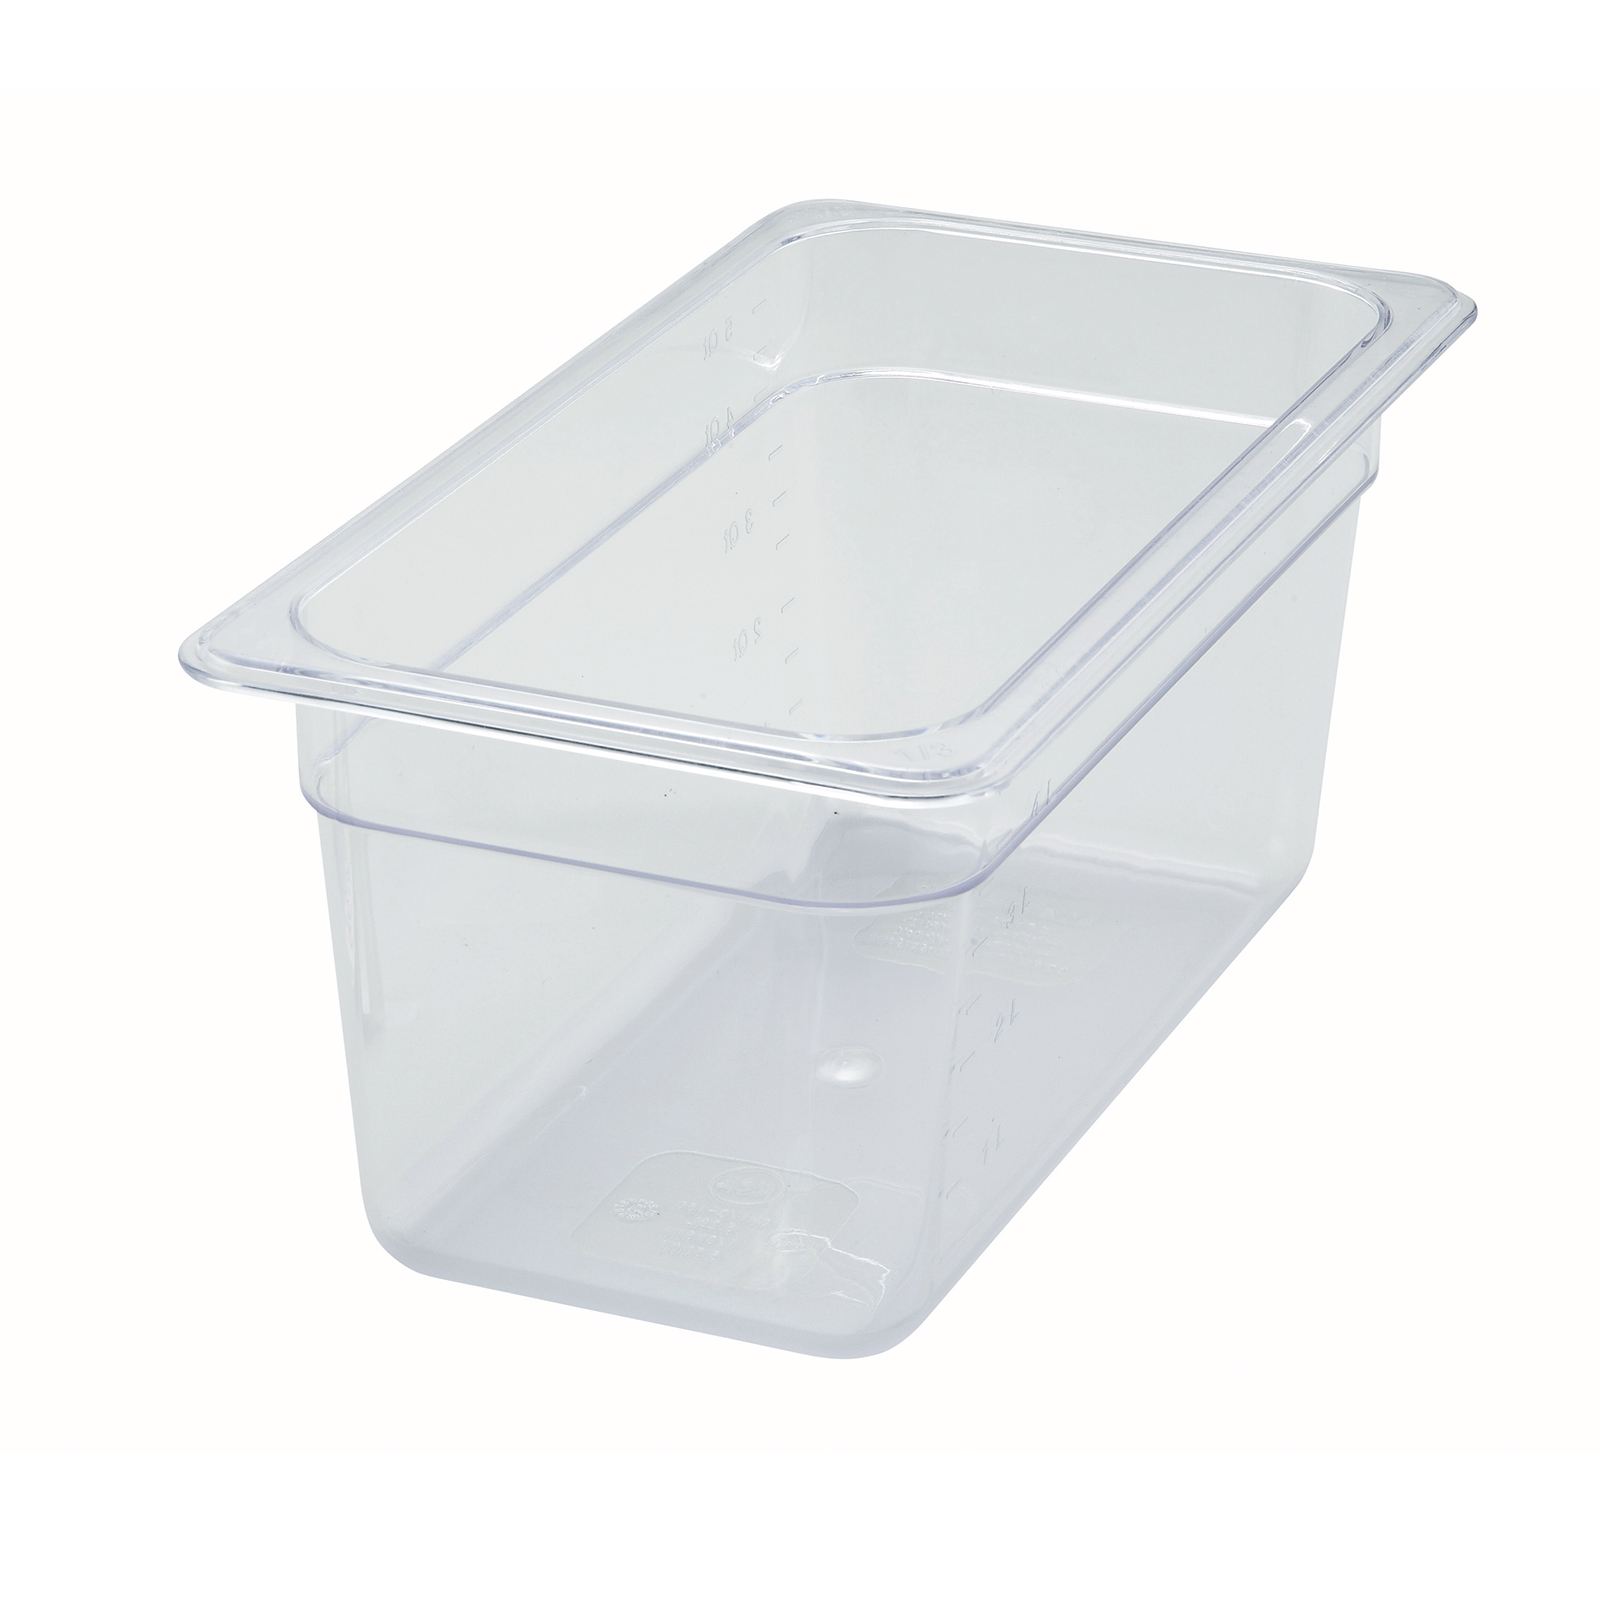 2410-025 Winco SP7306 food pan, 1/3size 6in D, plastic